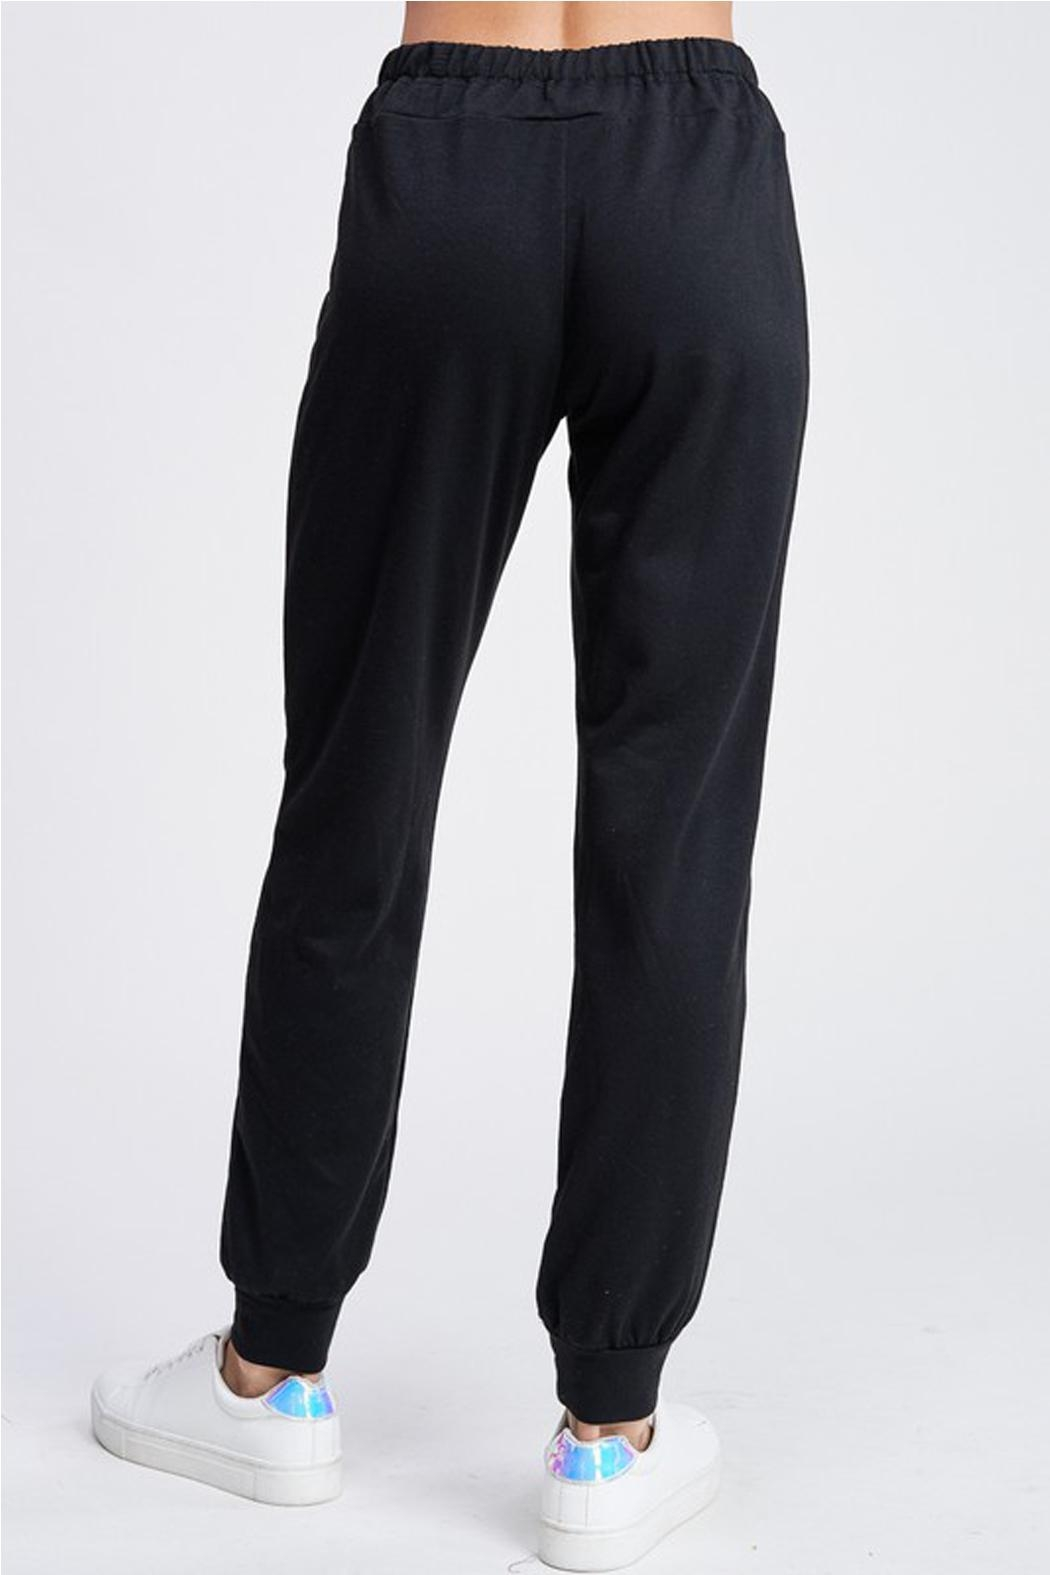 Wild Lilies Jewelry  Distressed Jogger Sweatpants - Side Cropped Image